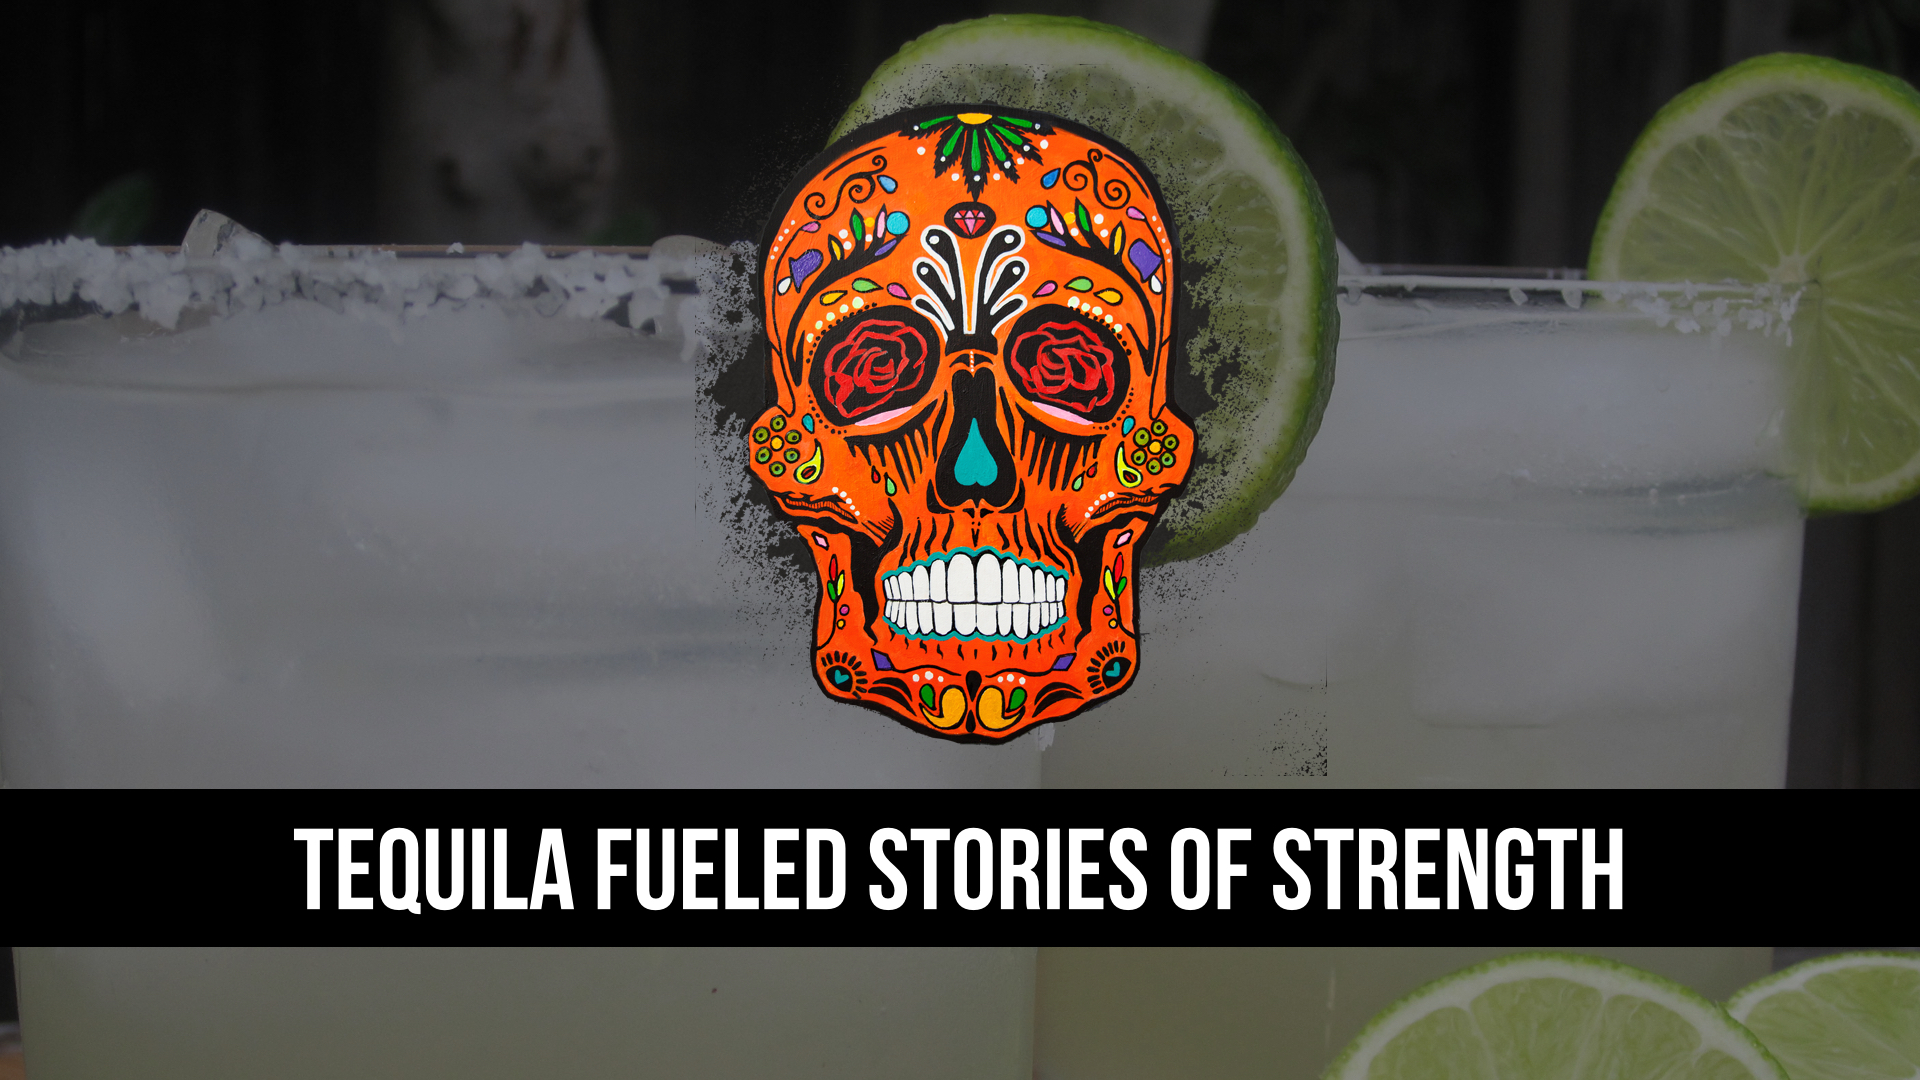 Tequila fueled stories of strength